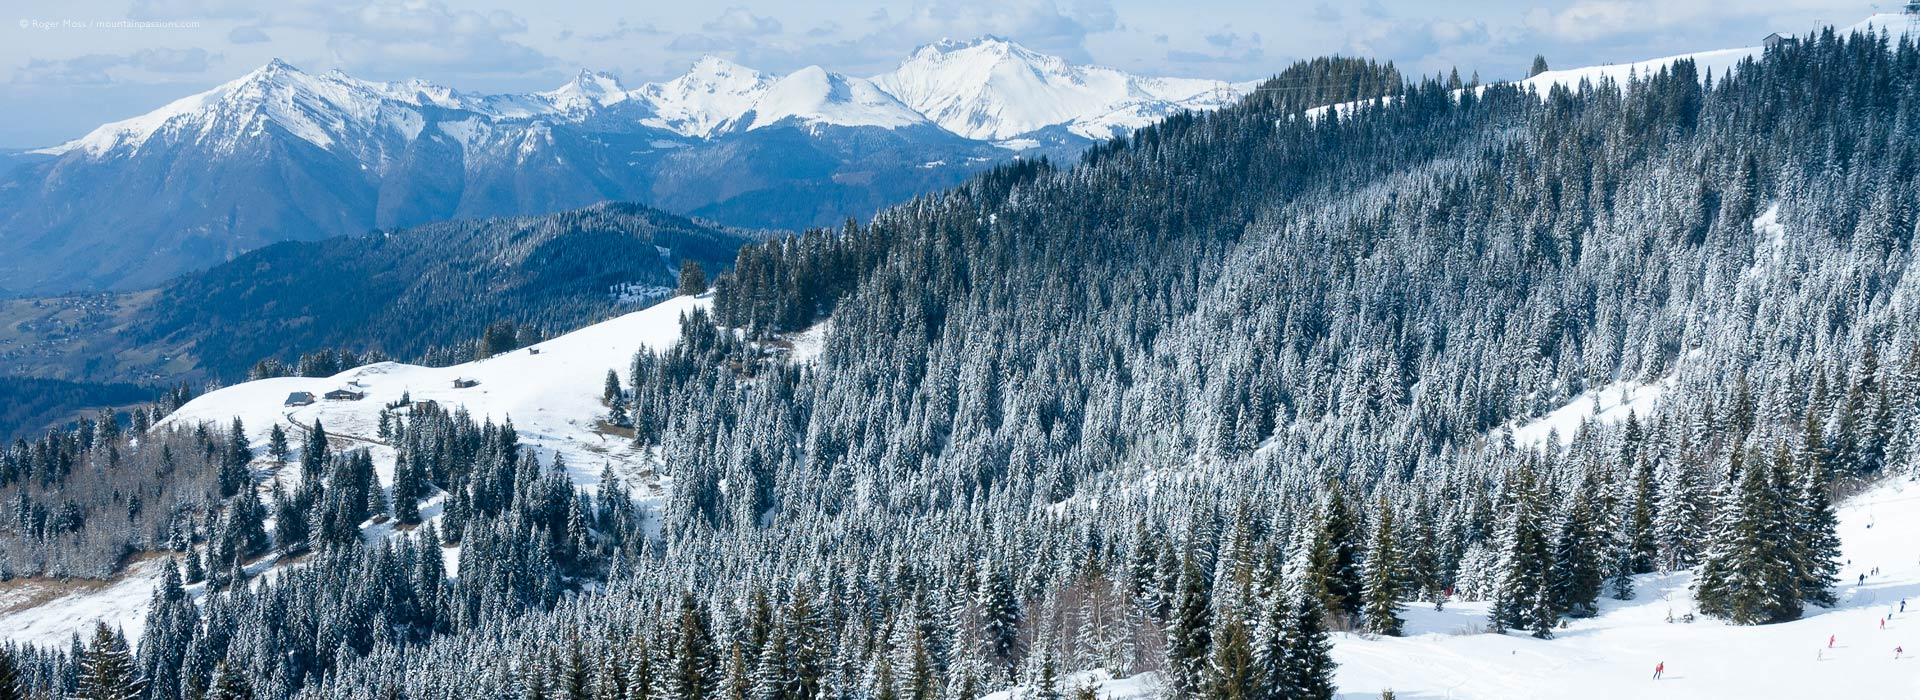 High view of snow-dusted mountain forests, with ski pistes